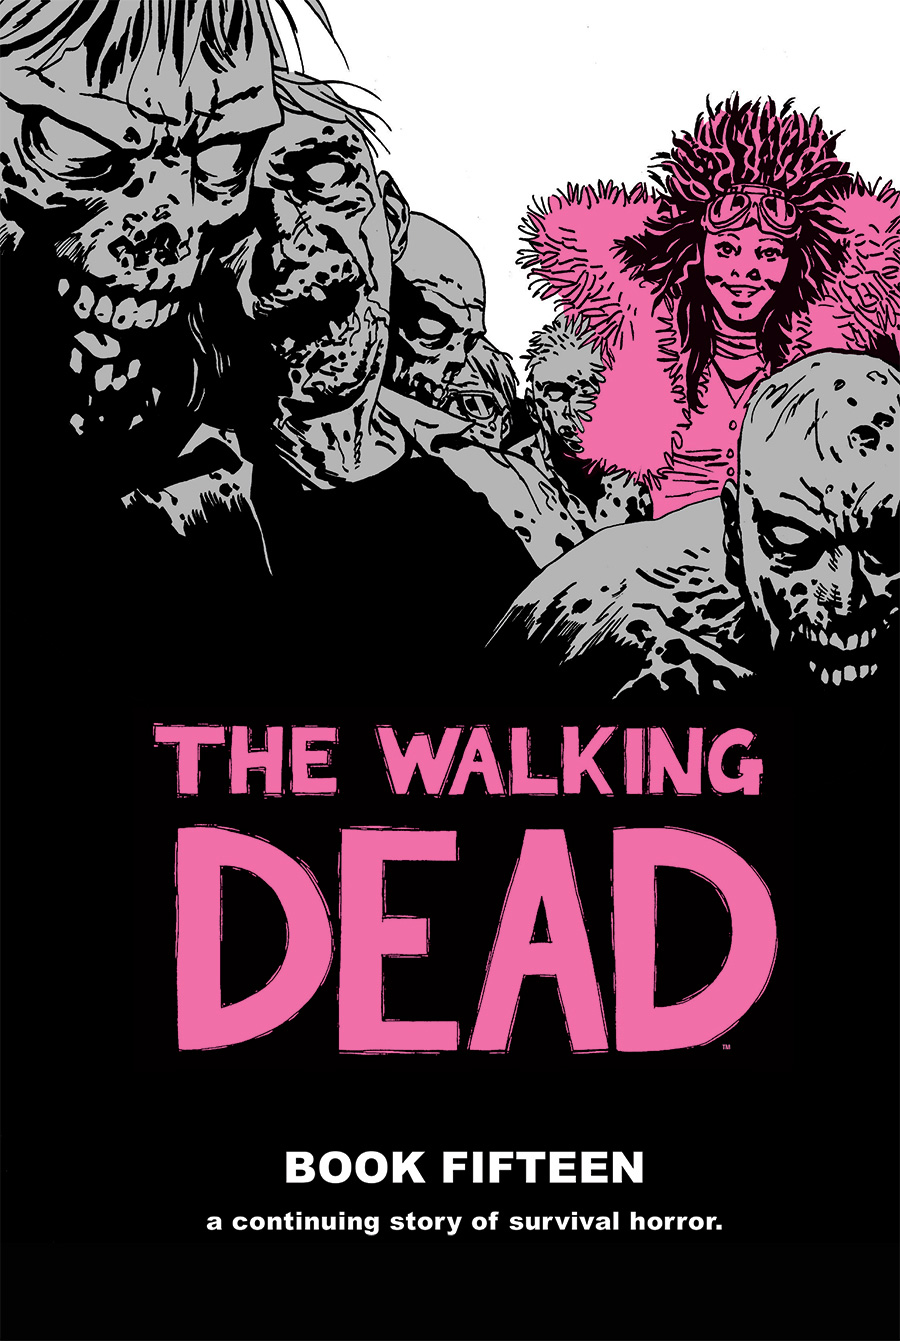 The Walking Dead: Book Fifteen